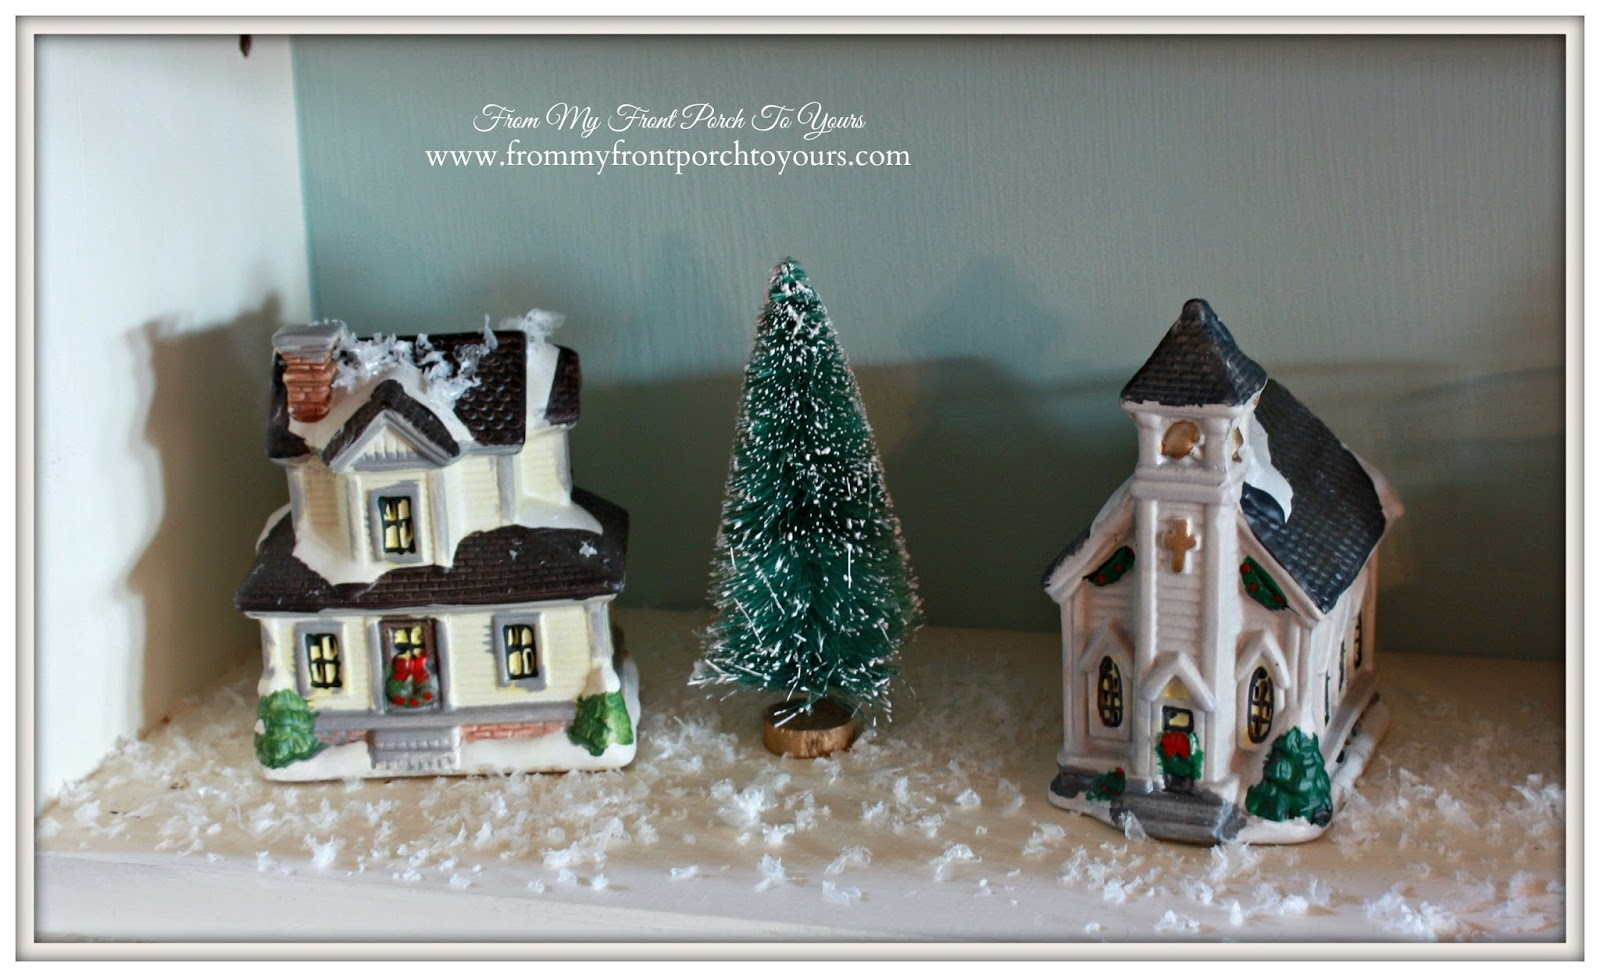 inexpensive christmas village pieces from walmart i will be doing a post on wednesday sharing all my village pieces